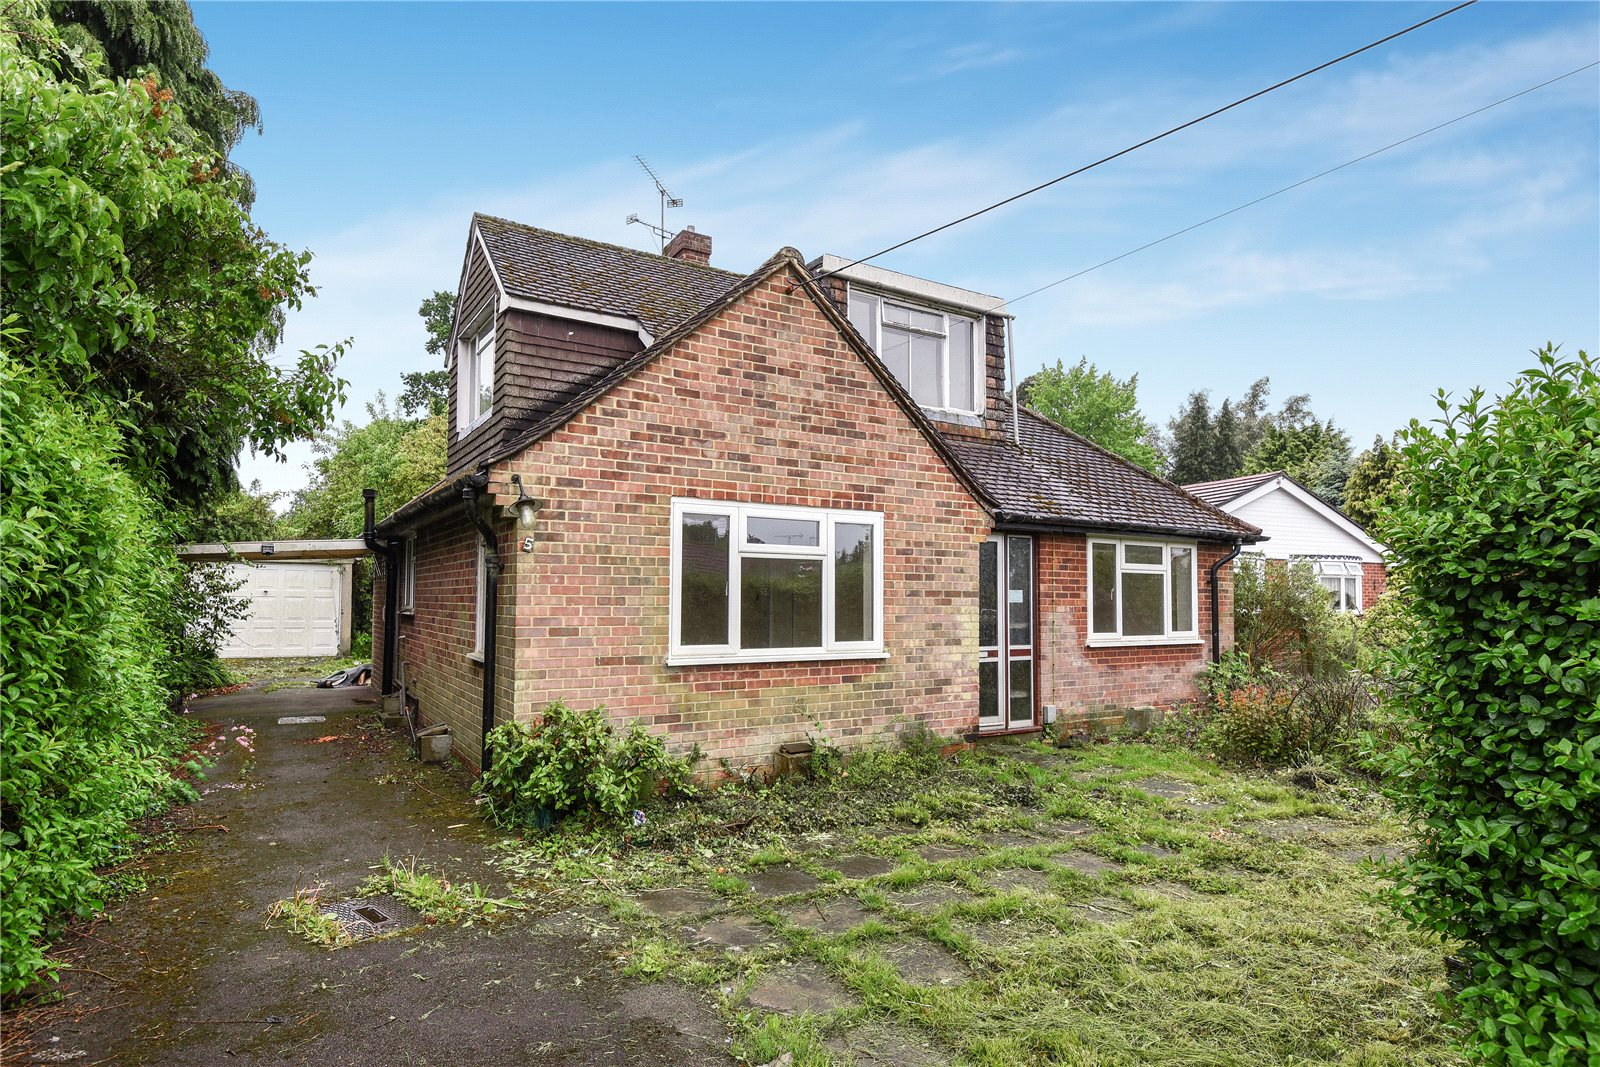 4 Bedrooms Detached Bungalow for sale in Sandhurst Lane, Blackwater, Camberley, Hampshire, GU17